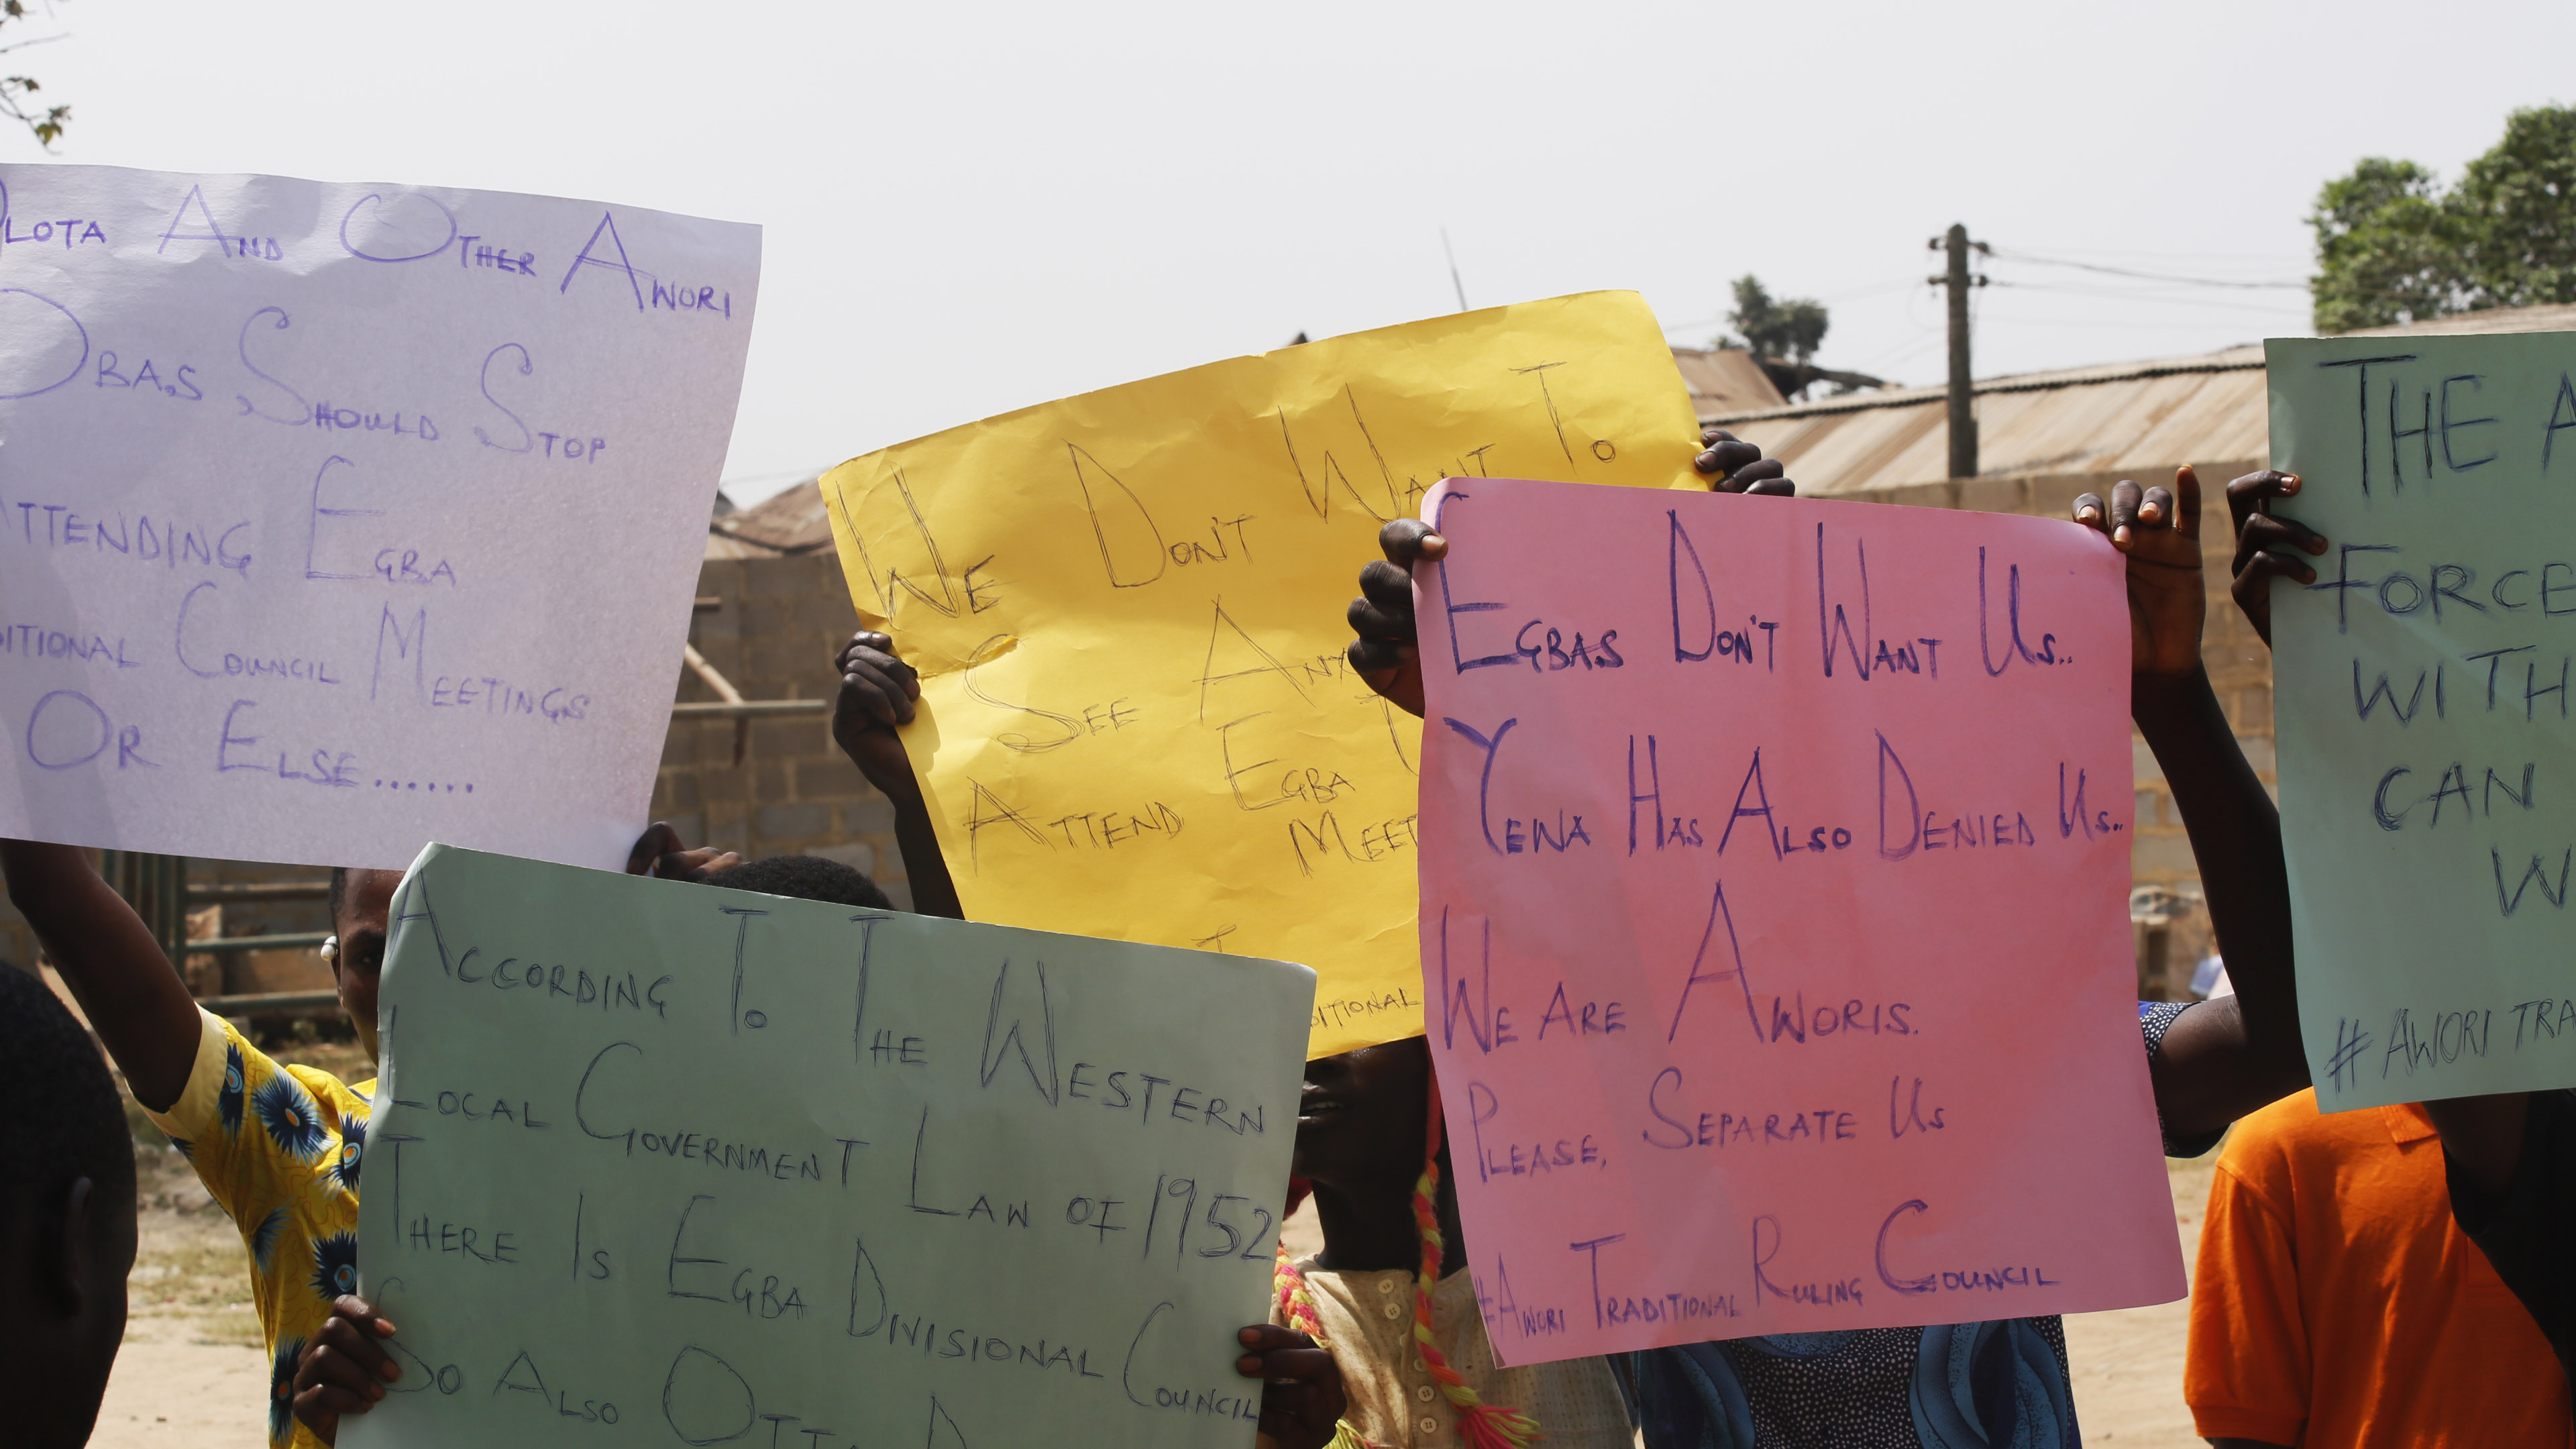 Awori Traditional Ruling Council: Youth Group Protests, Warns Awori Obas  Not To Attend Egba Traditional Council Meetings